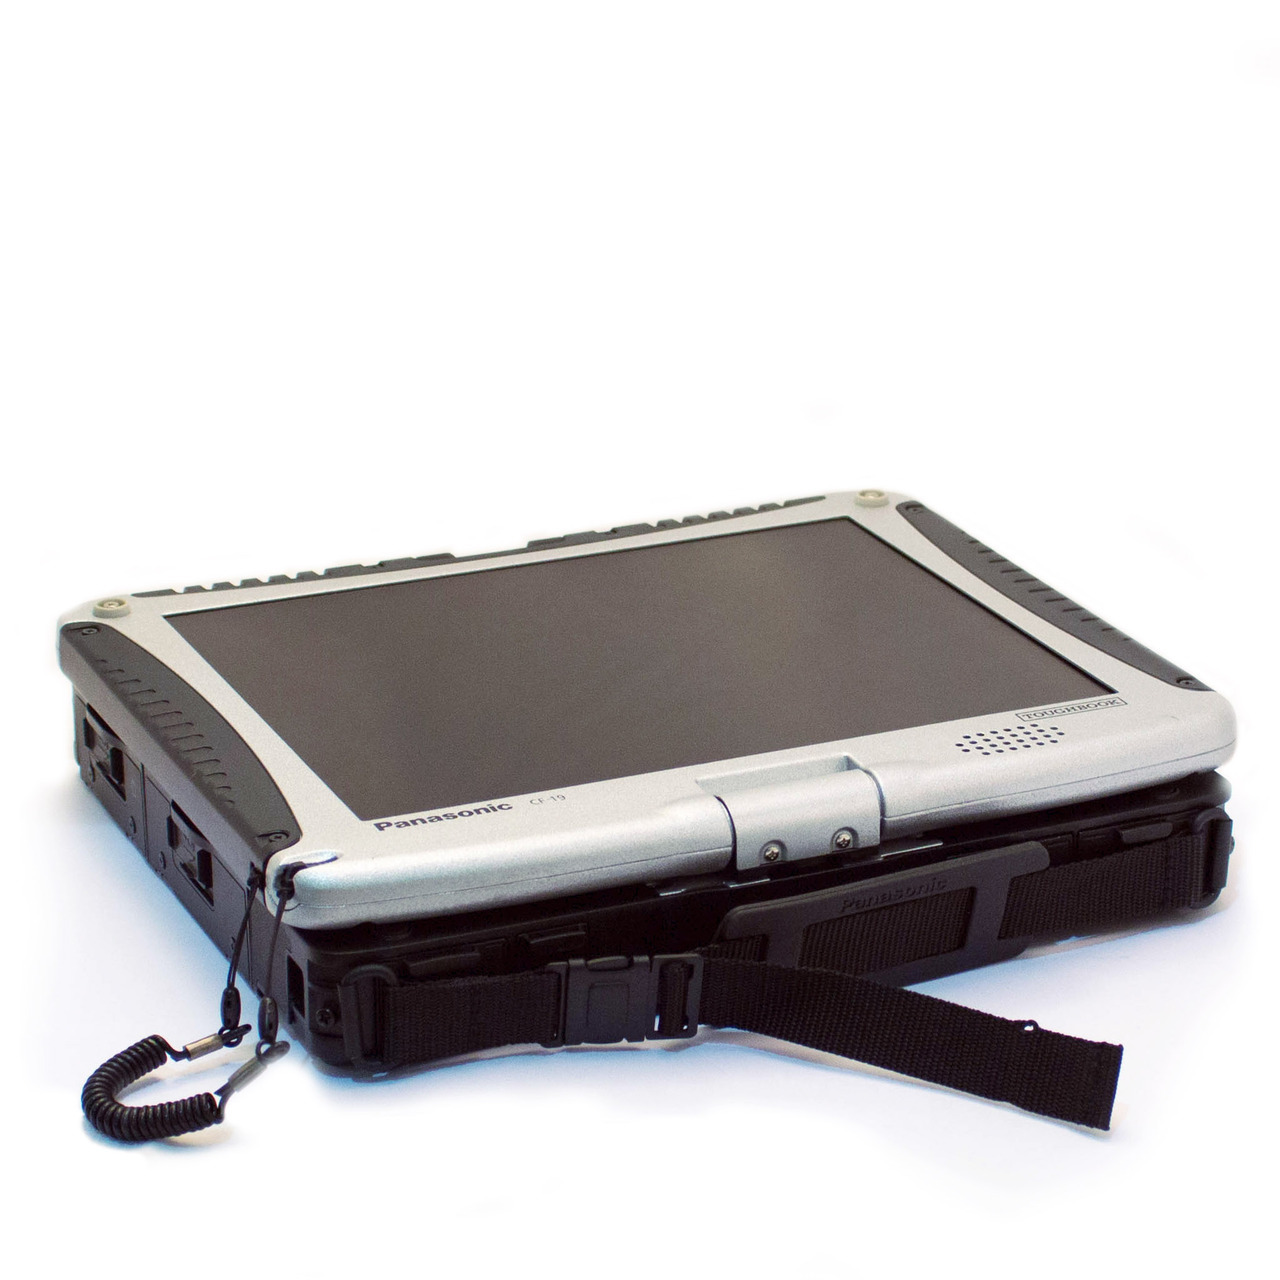 """Laptop Panasonic Toughbook CF-19 MK8, Intel Core i5 3610ME 2.7 GHz, WI-FI, Bluetooth, Display 10,4"""" 1024 by 768 Touchscreen, 4 GB DDR3; 500 GB HDD SATA, Second Hand - imaginea 5"""